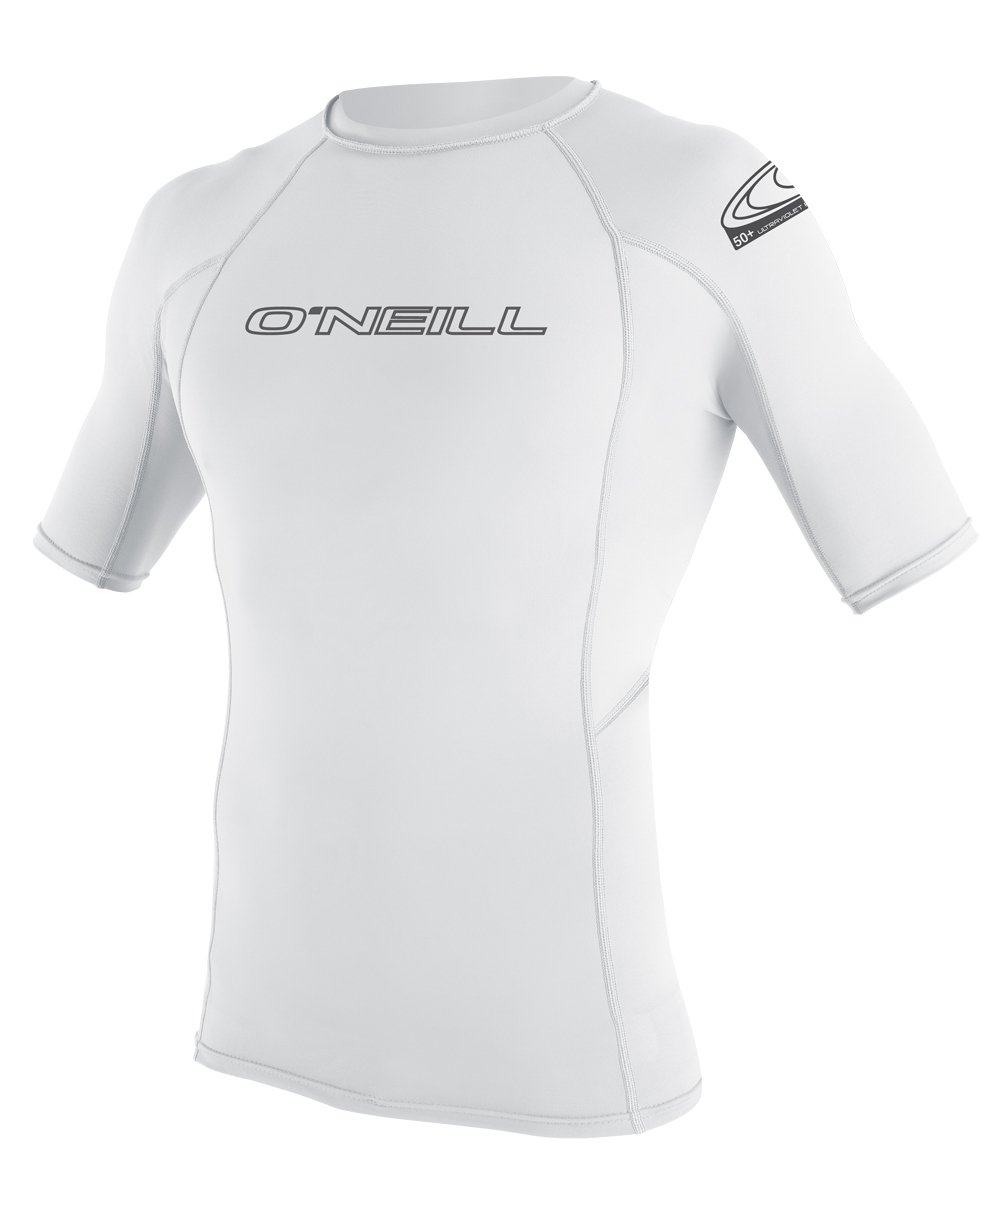 O'Neill Wetsuits Wetsuits UV Sun Protection Mens Basic Skins Short Sleeve Crew Sun Shirt Rash Guard, White, Medium by O'Neill Wetsuits